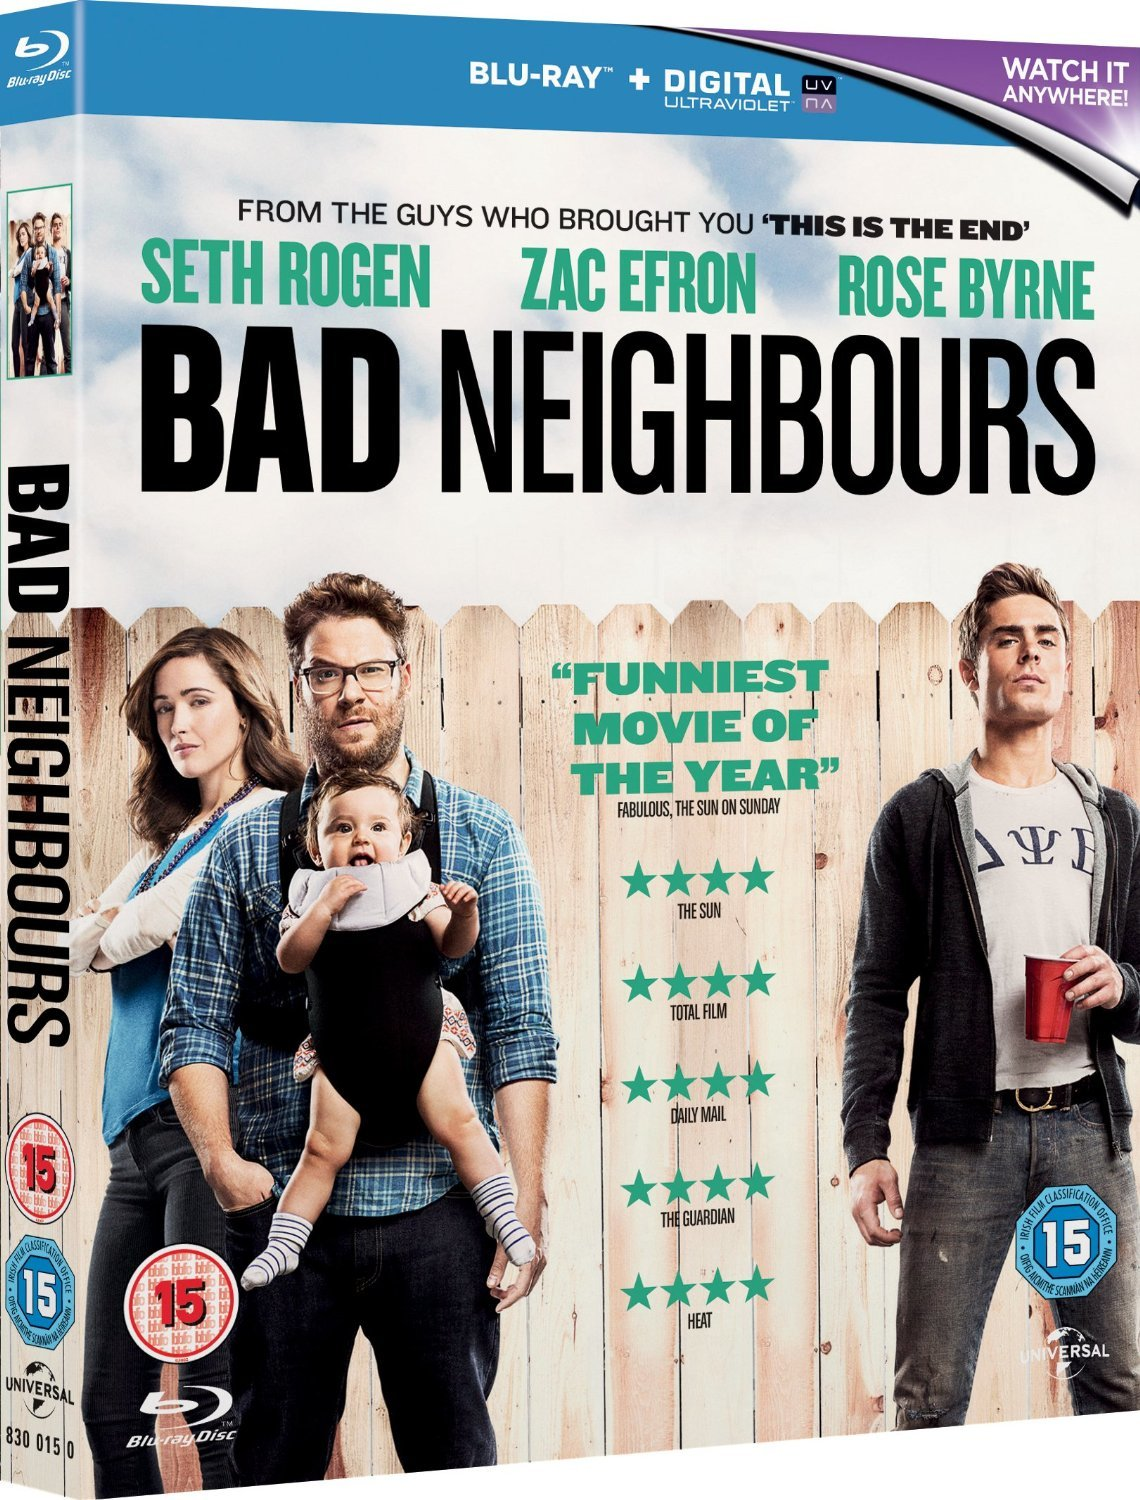 Quotes about Bad neighbors (27 quotes)